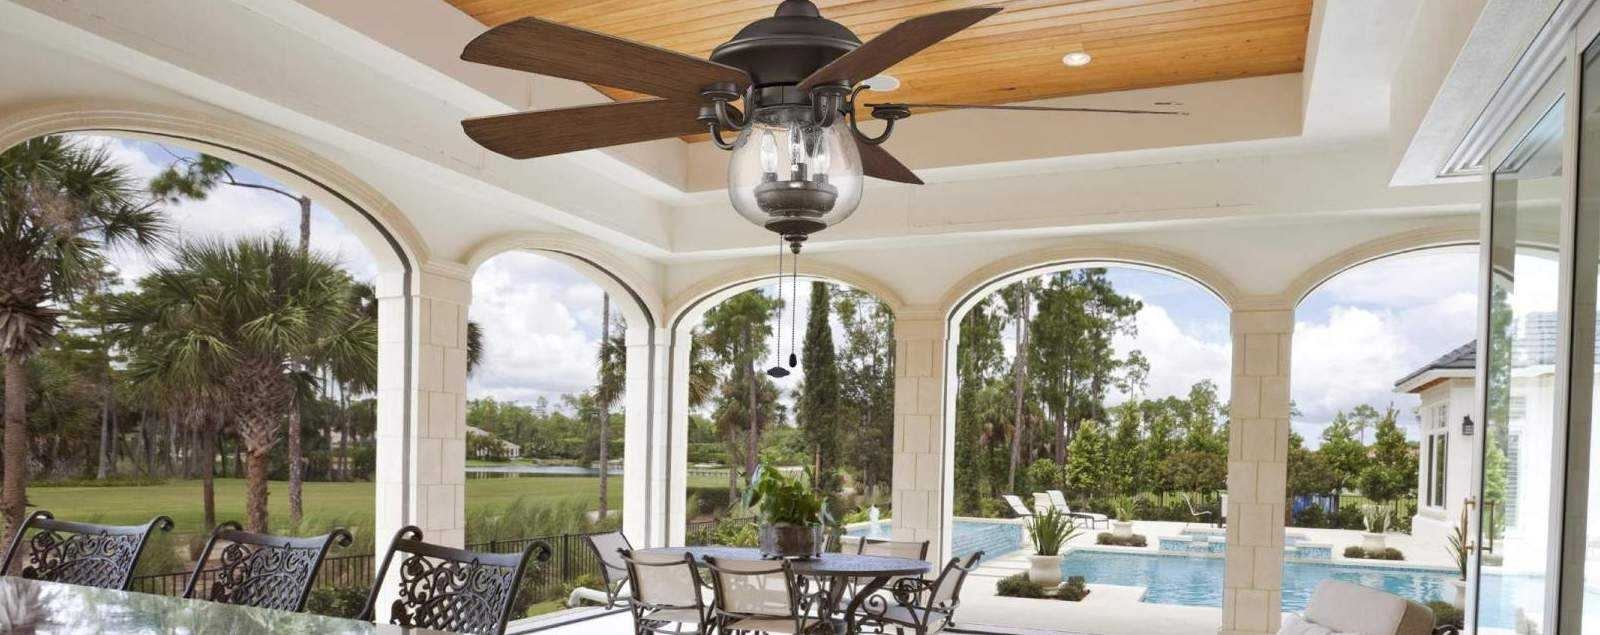 Outdoor Ceiling Fans Hansen Ideas With Incredible Exterior For Throughout Best And Newest Outdoor Ceiling Fans For Porch (View 16 of 20)